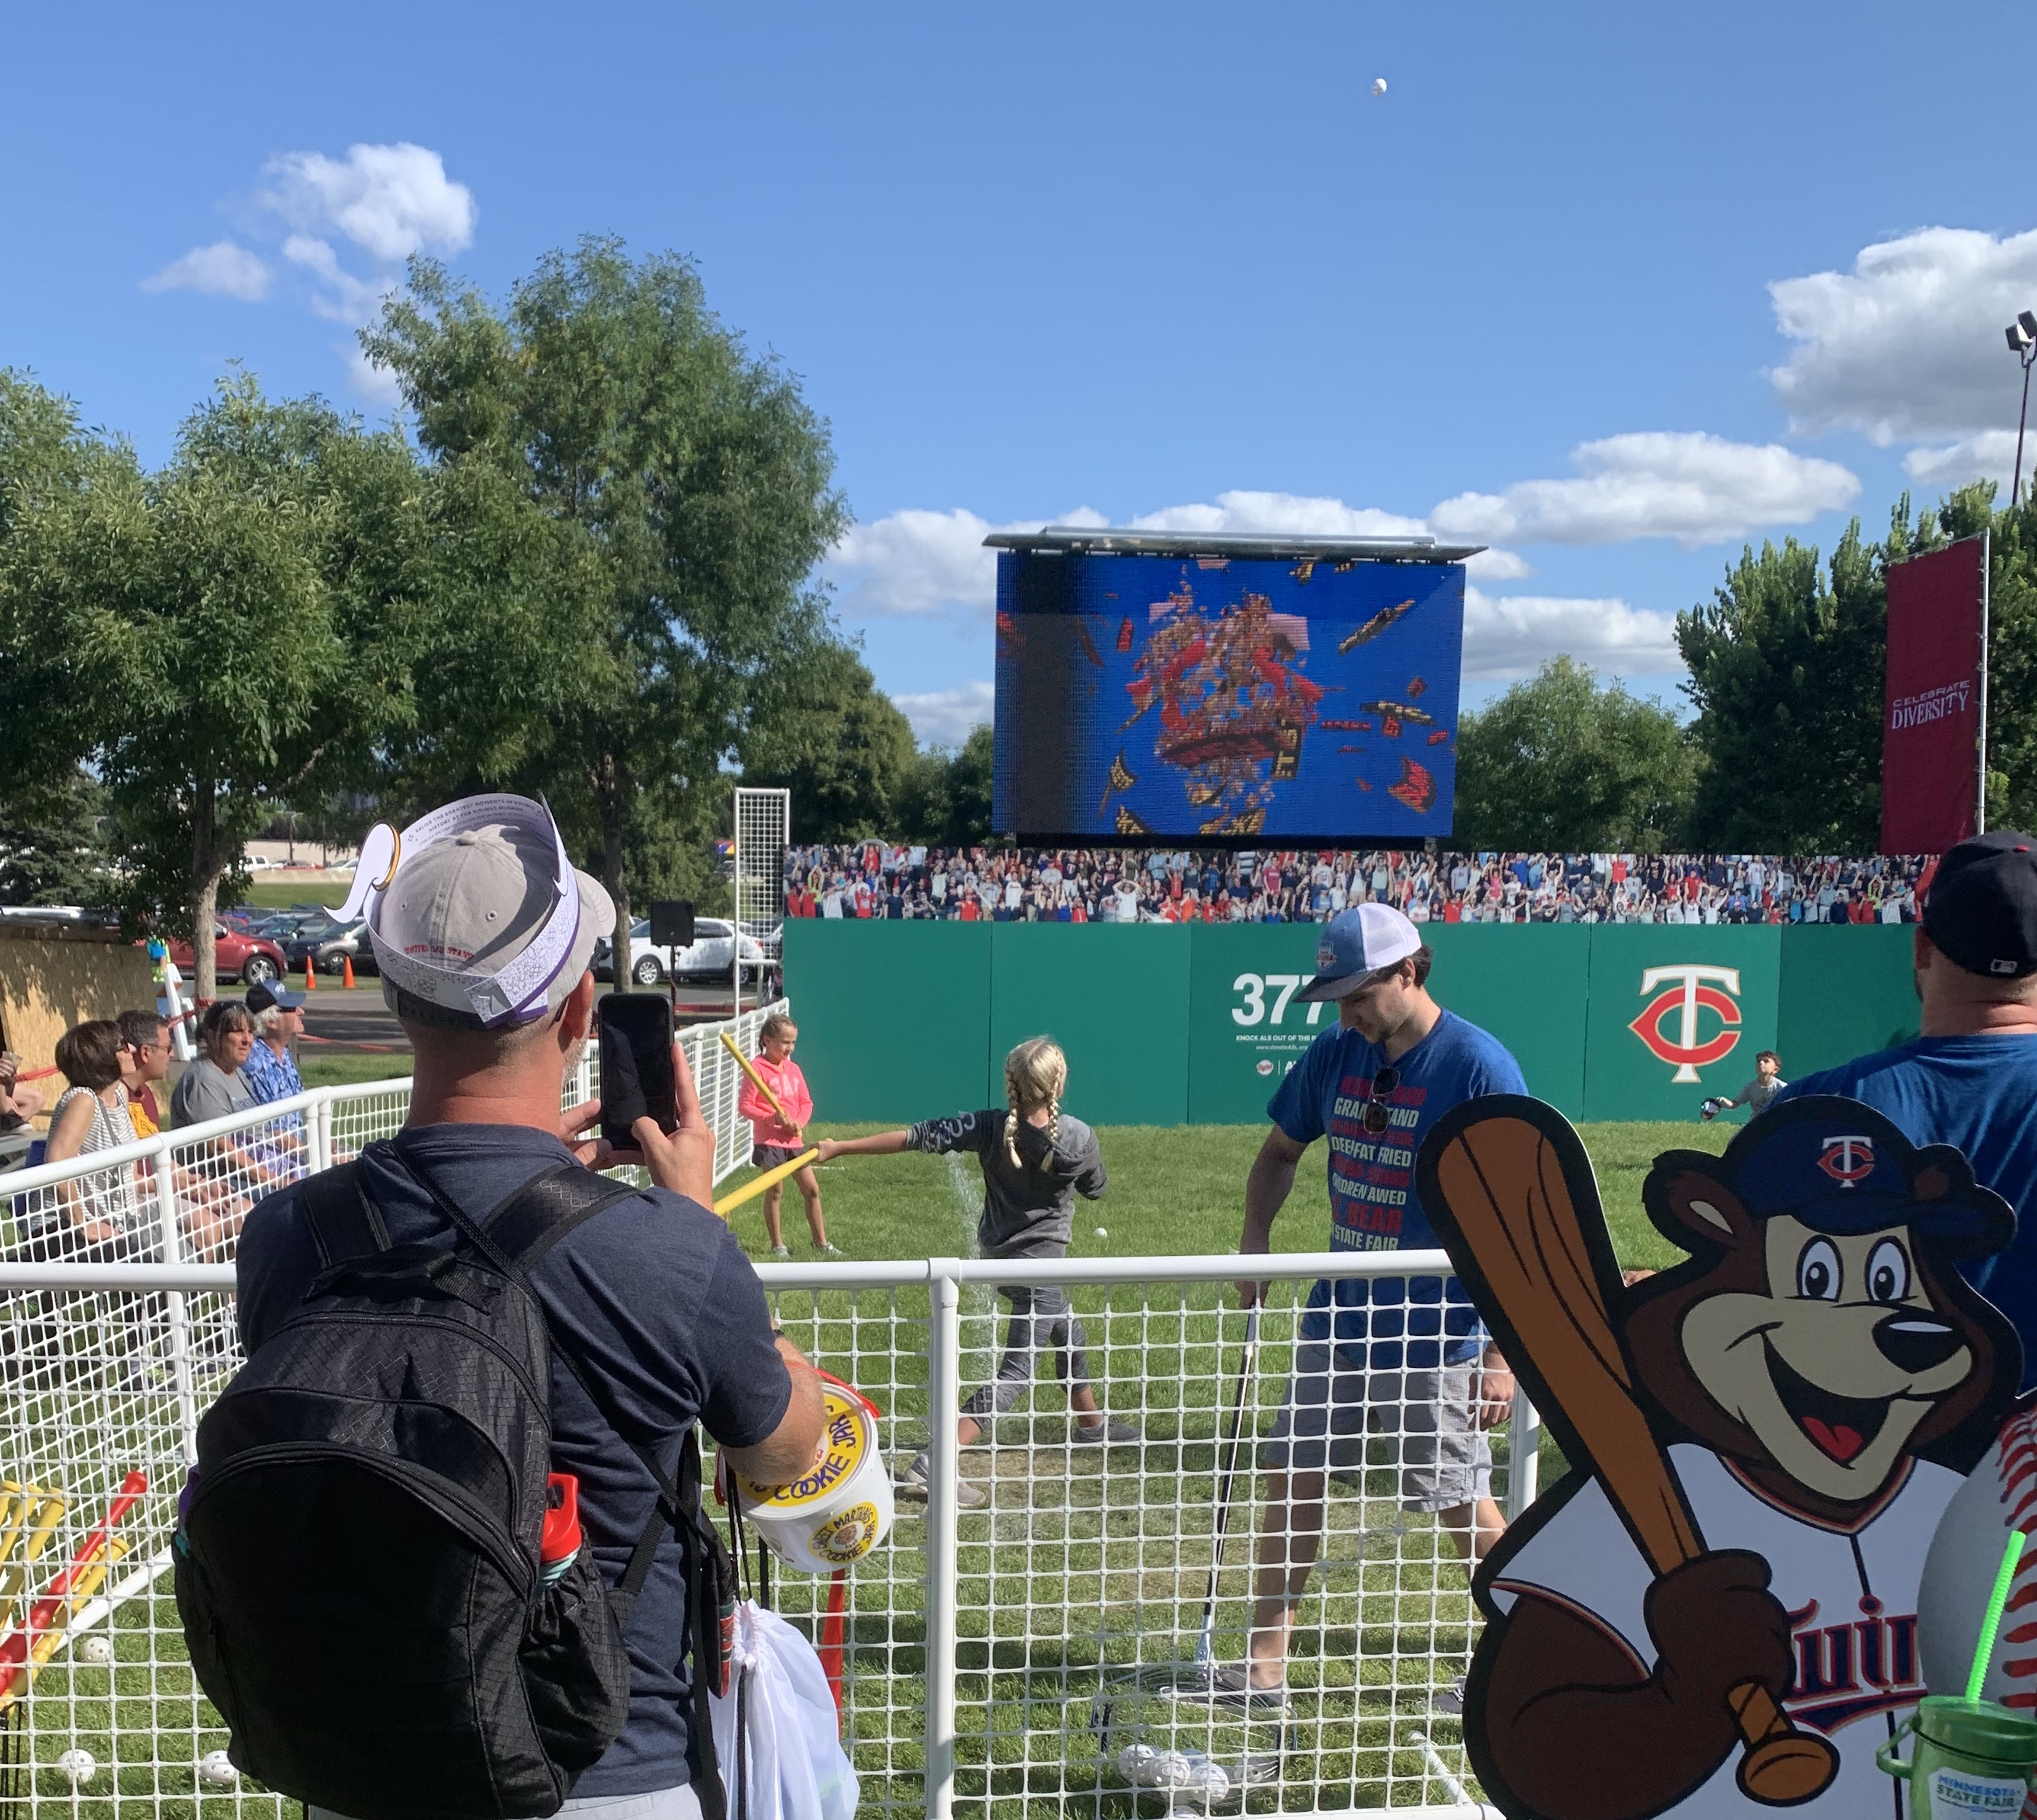 led mobile jumbotron big screen video wall for outdoor event rental for minnesota twins at the minnesota state fair